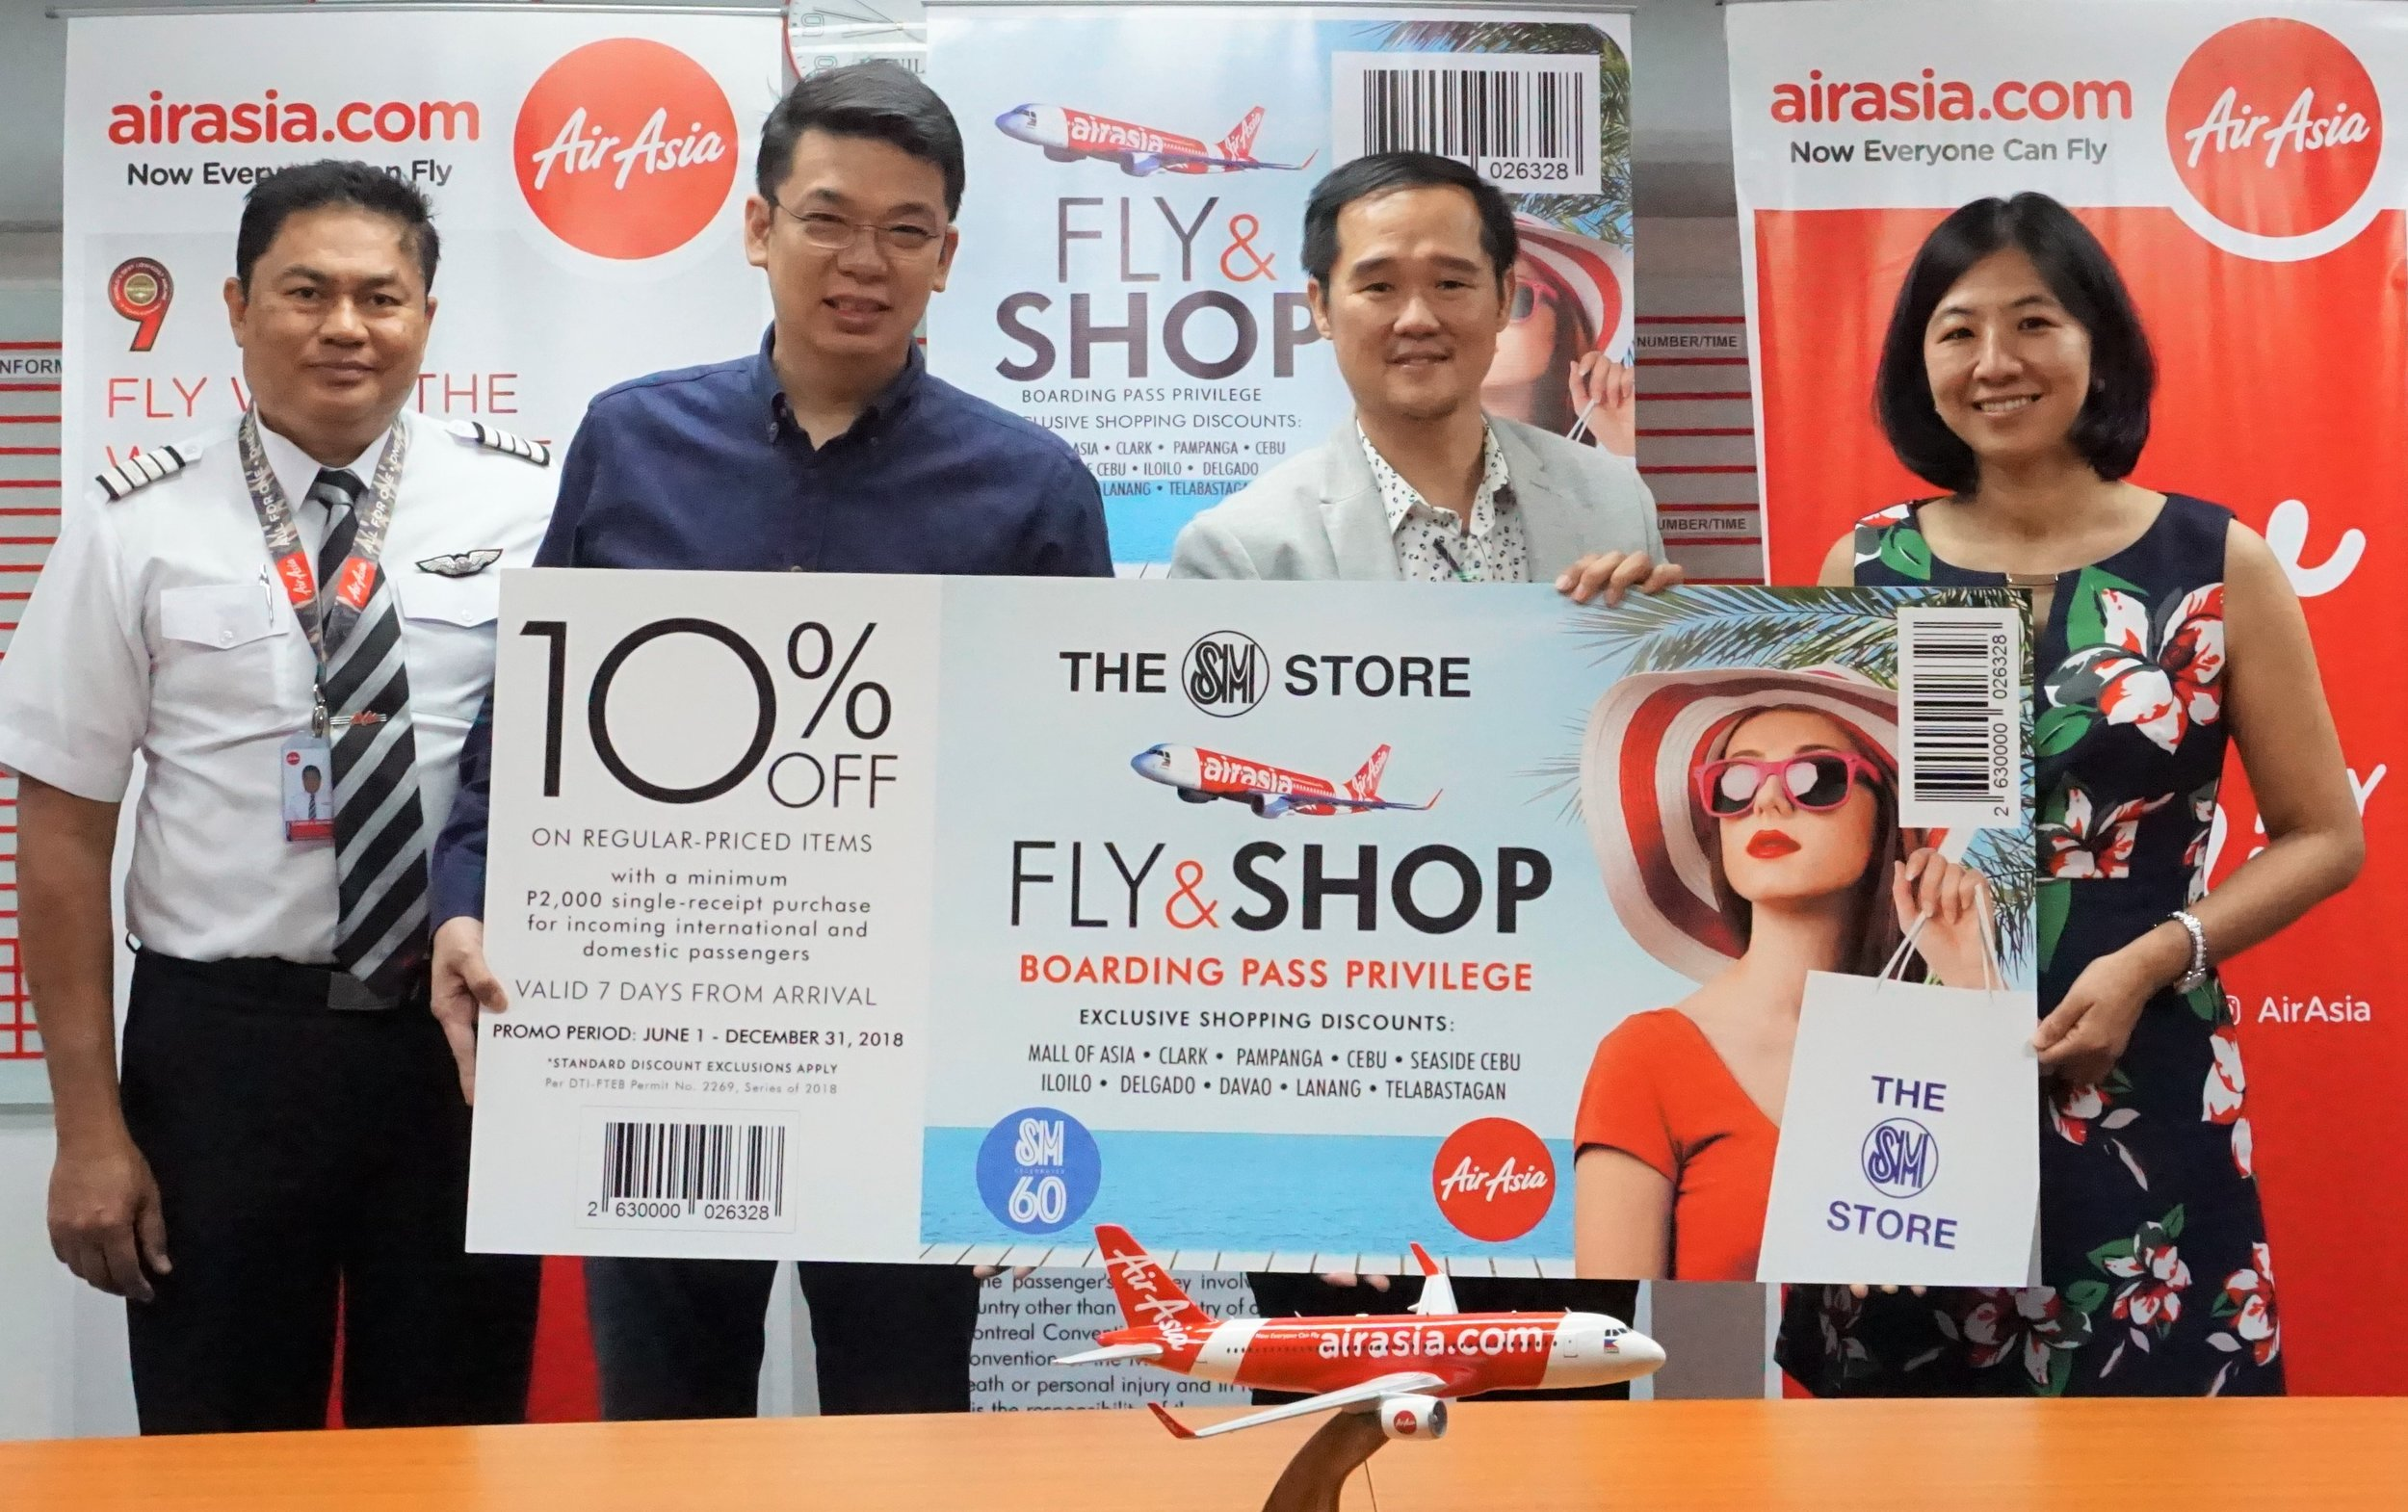 Caption (L-R) AirAsia Philippines Director for flight operations Captain Gomer Monreal, AirAsia Philippines Commercial Director Gilbert Simpao, The SM Store SVP Eugene Saw and The SM Store VP Quennielyn Cua.